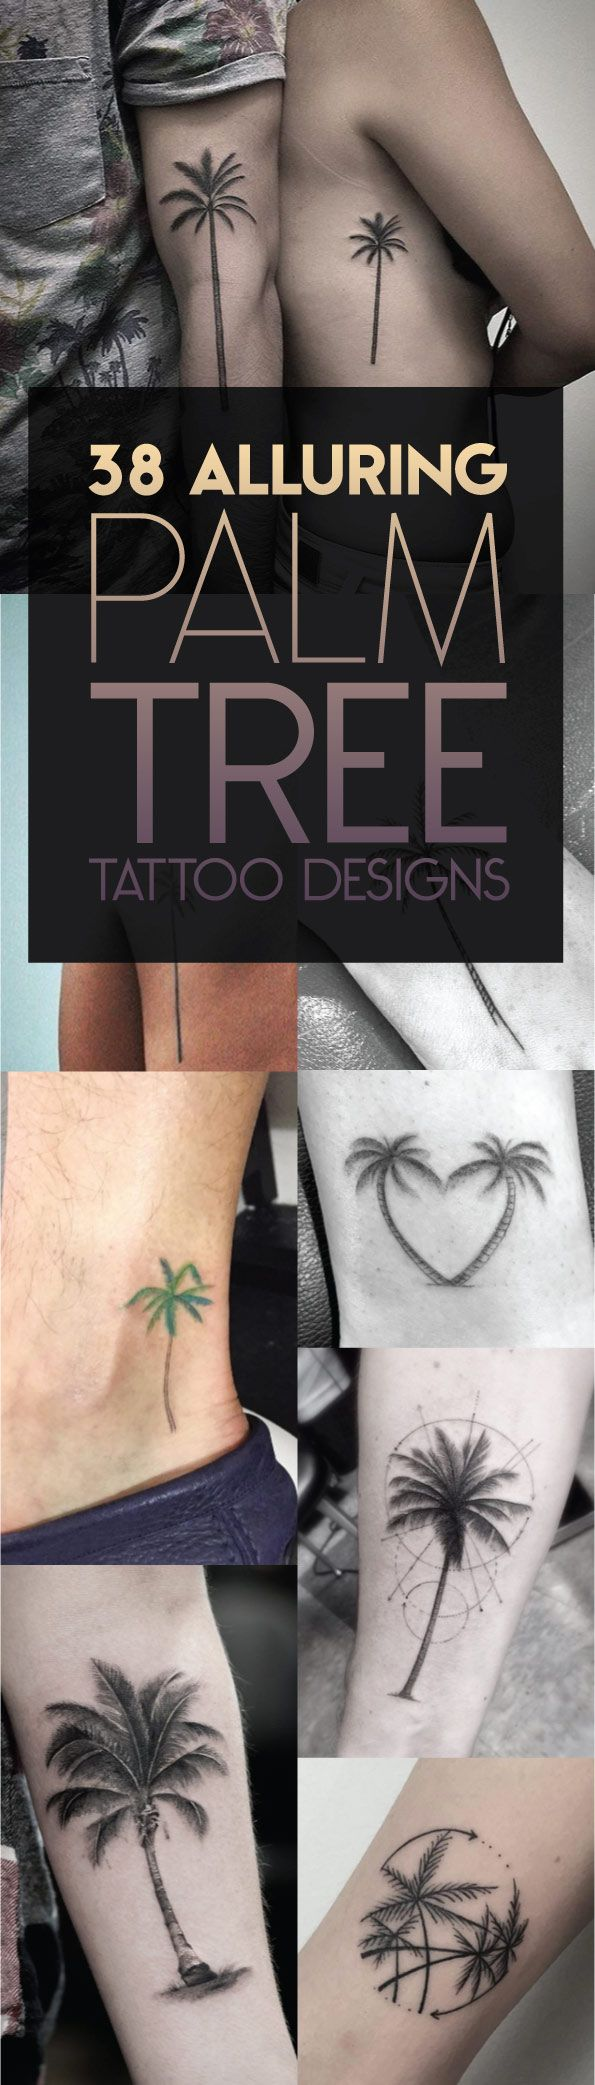 Palm Tree Tattoo Designs | TattooBlend